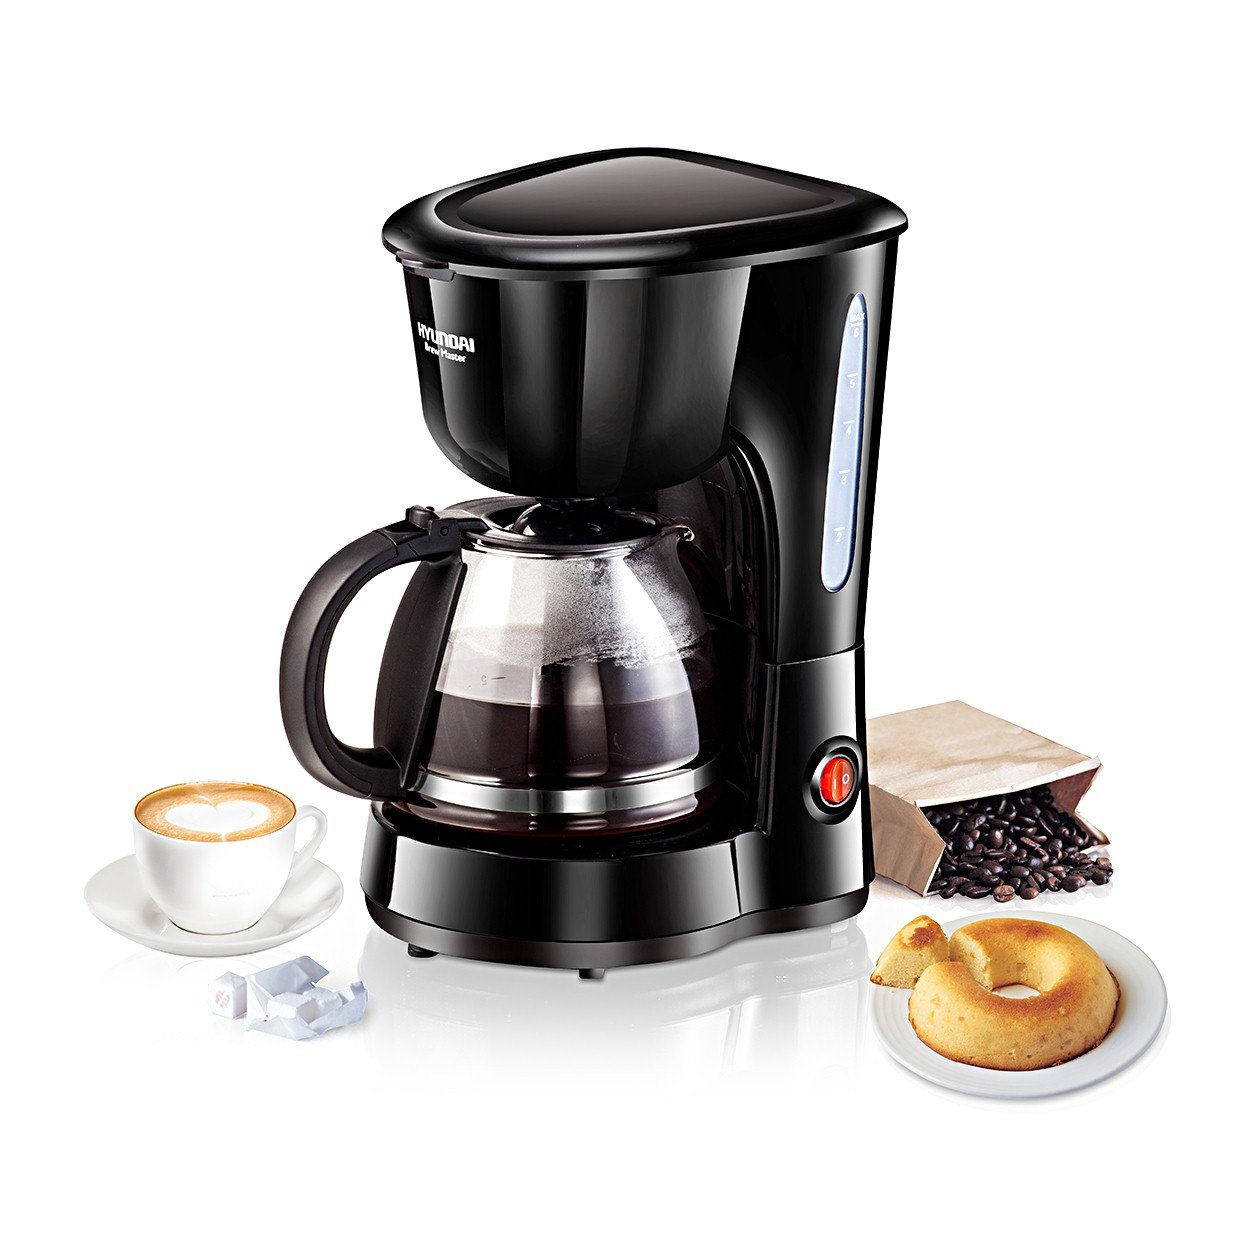 Electronic What To Look For When Buying A Coffee Machine drip coffee machines buy online at low hyundai cm hdb6b07 cxf 6 cup maker black